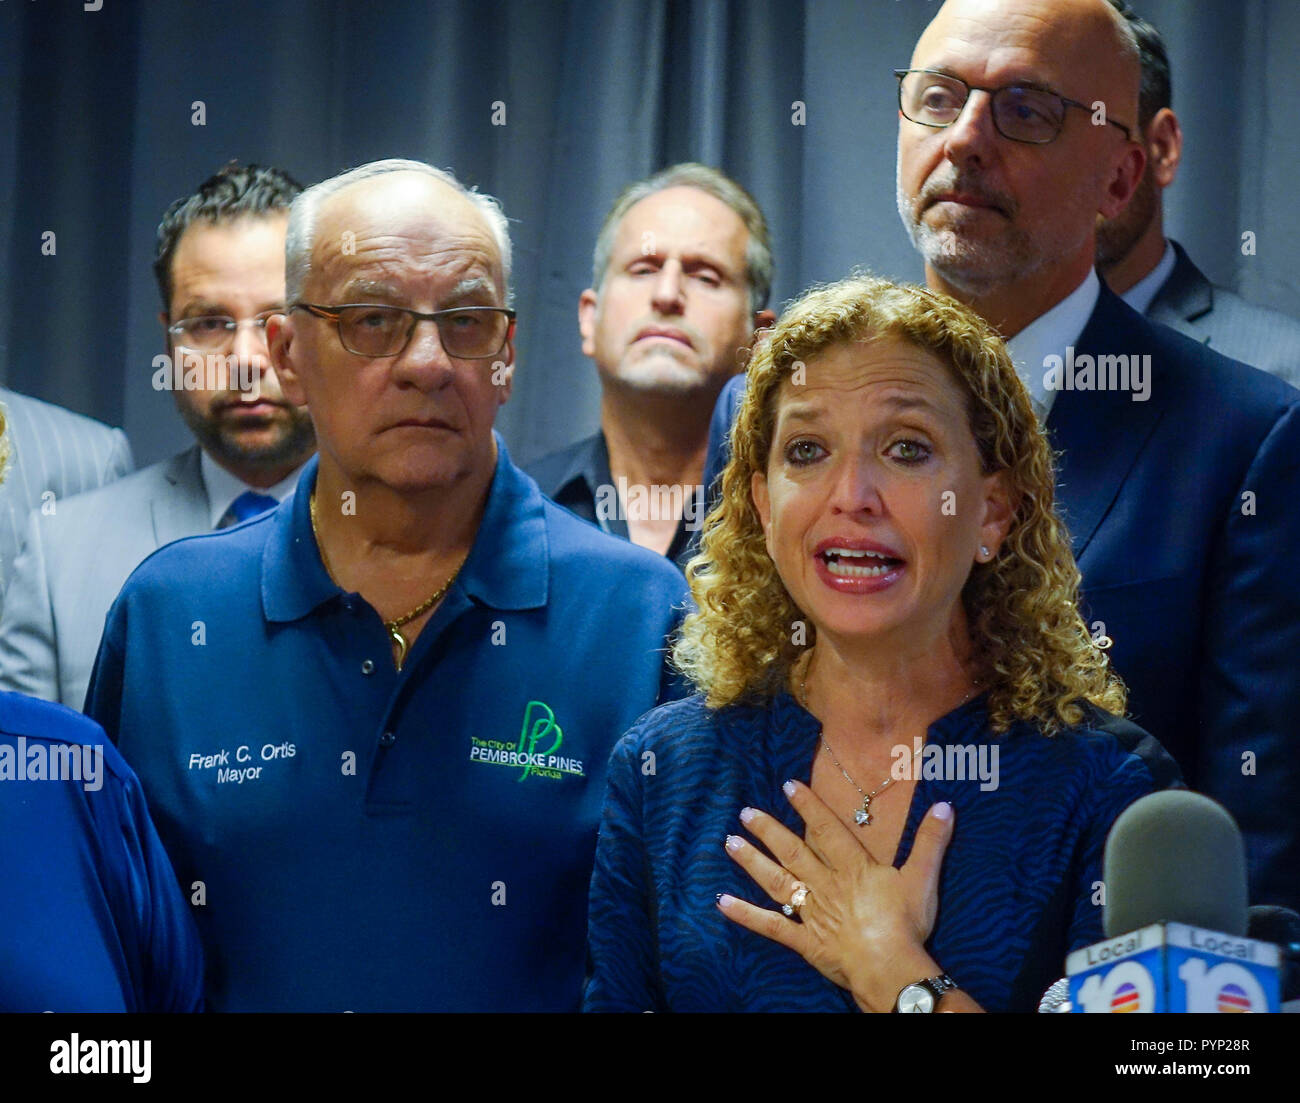 Davie, FL, USA. 29th Oct, 2018. U.S. Rep. Debbie Wasserman Schultz gives a passionate response to the massacre of Jewish congregants at the Pittsburgh synagogue during a news conference at the Jewish Federation of Broward County in Davie, Monday, Oct. 29, 2018 Credit: Sun-Sentinel/ZUMA Wire/Alamy Live News - Stock Image